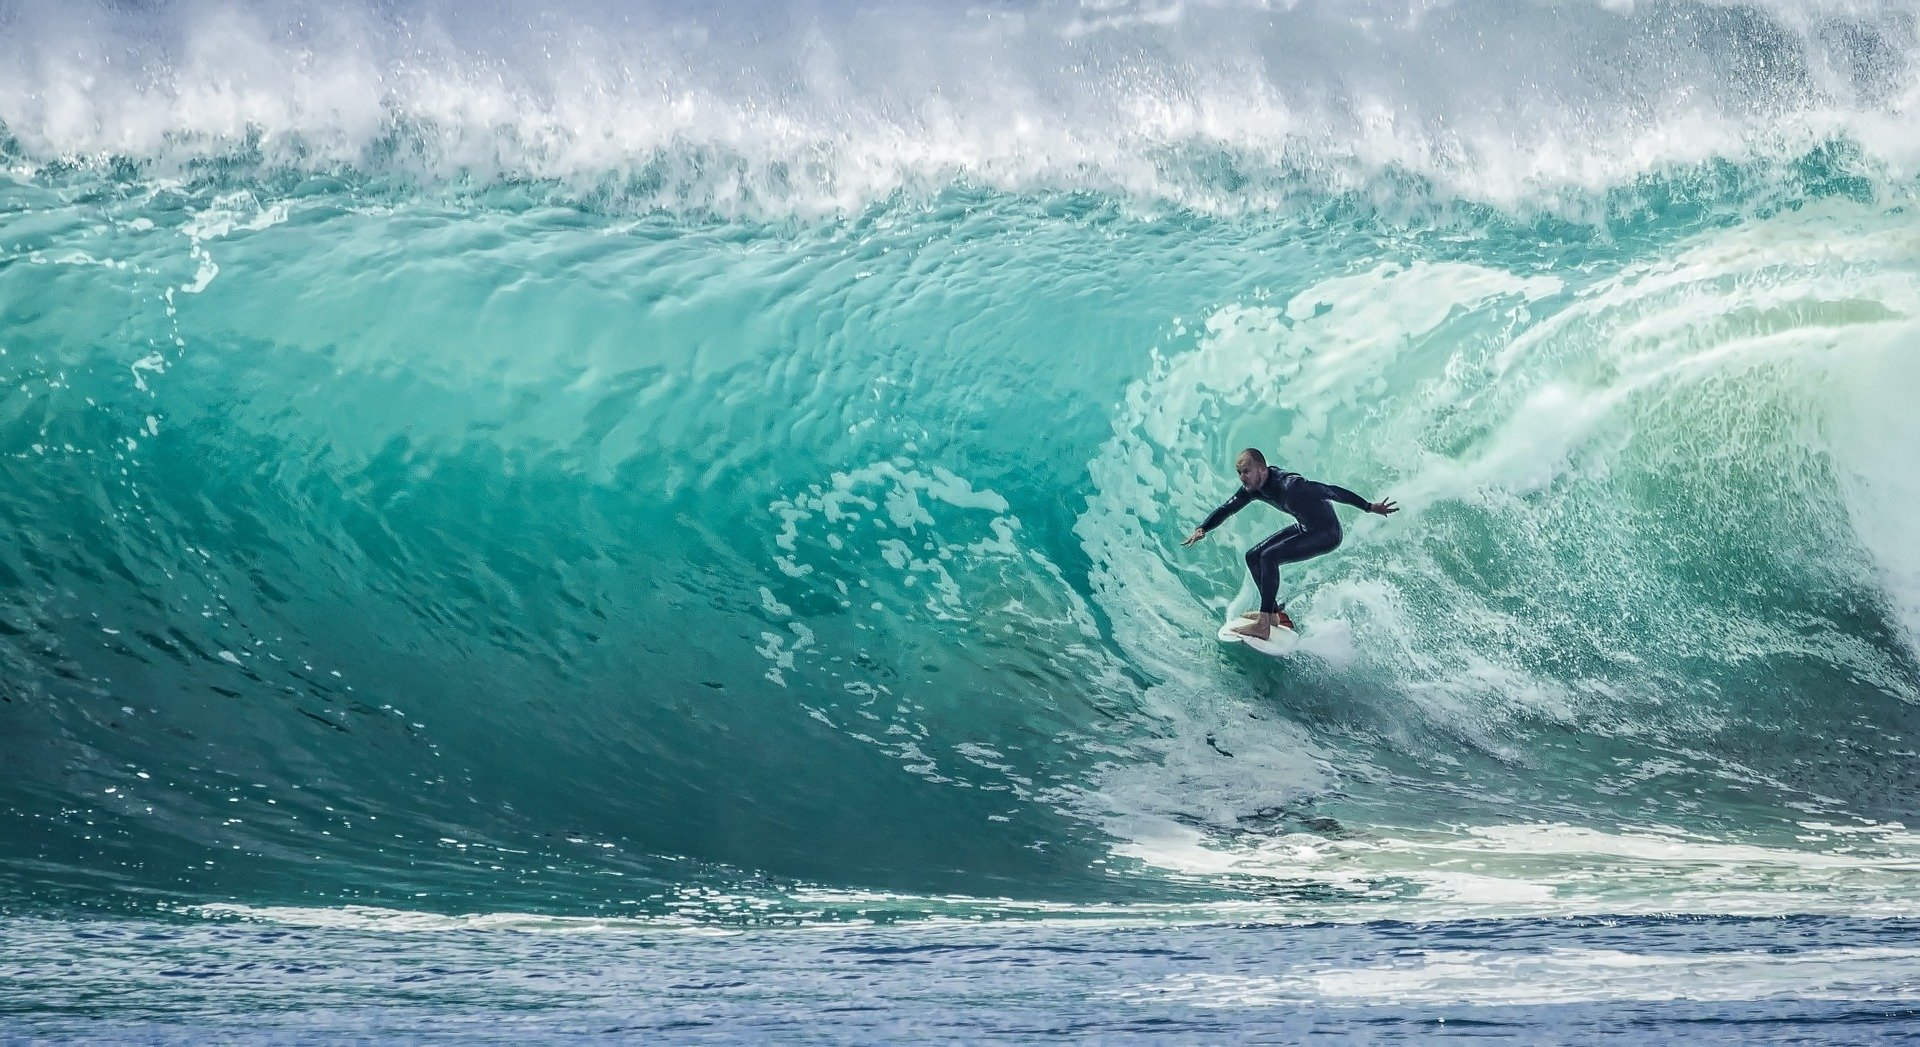 surfer riding pipeline in a large wave